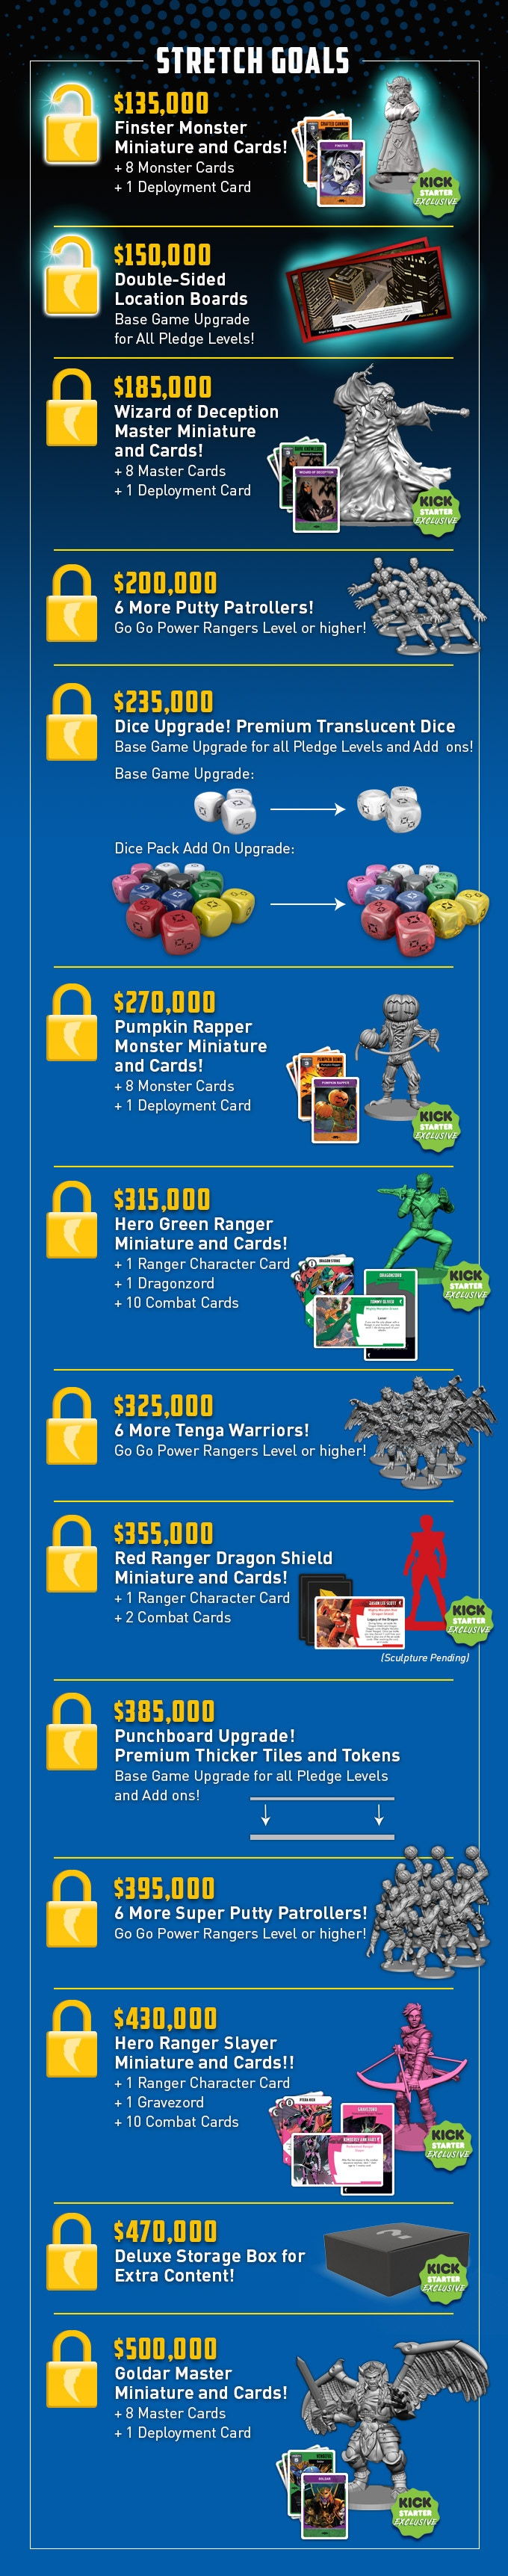 Power Rangers_Heroes of the Grid_kickstarter goals_base set (1)